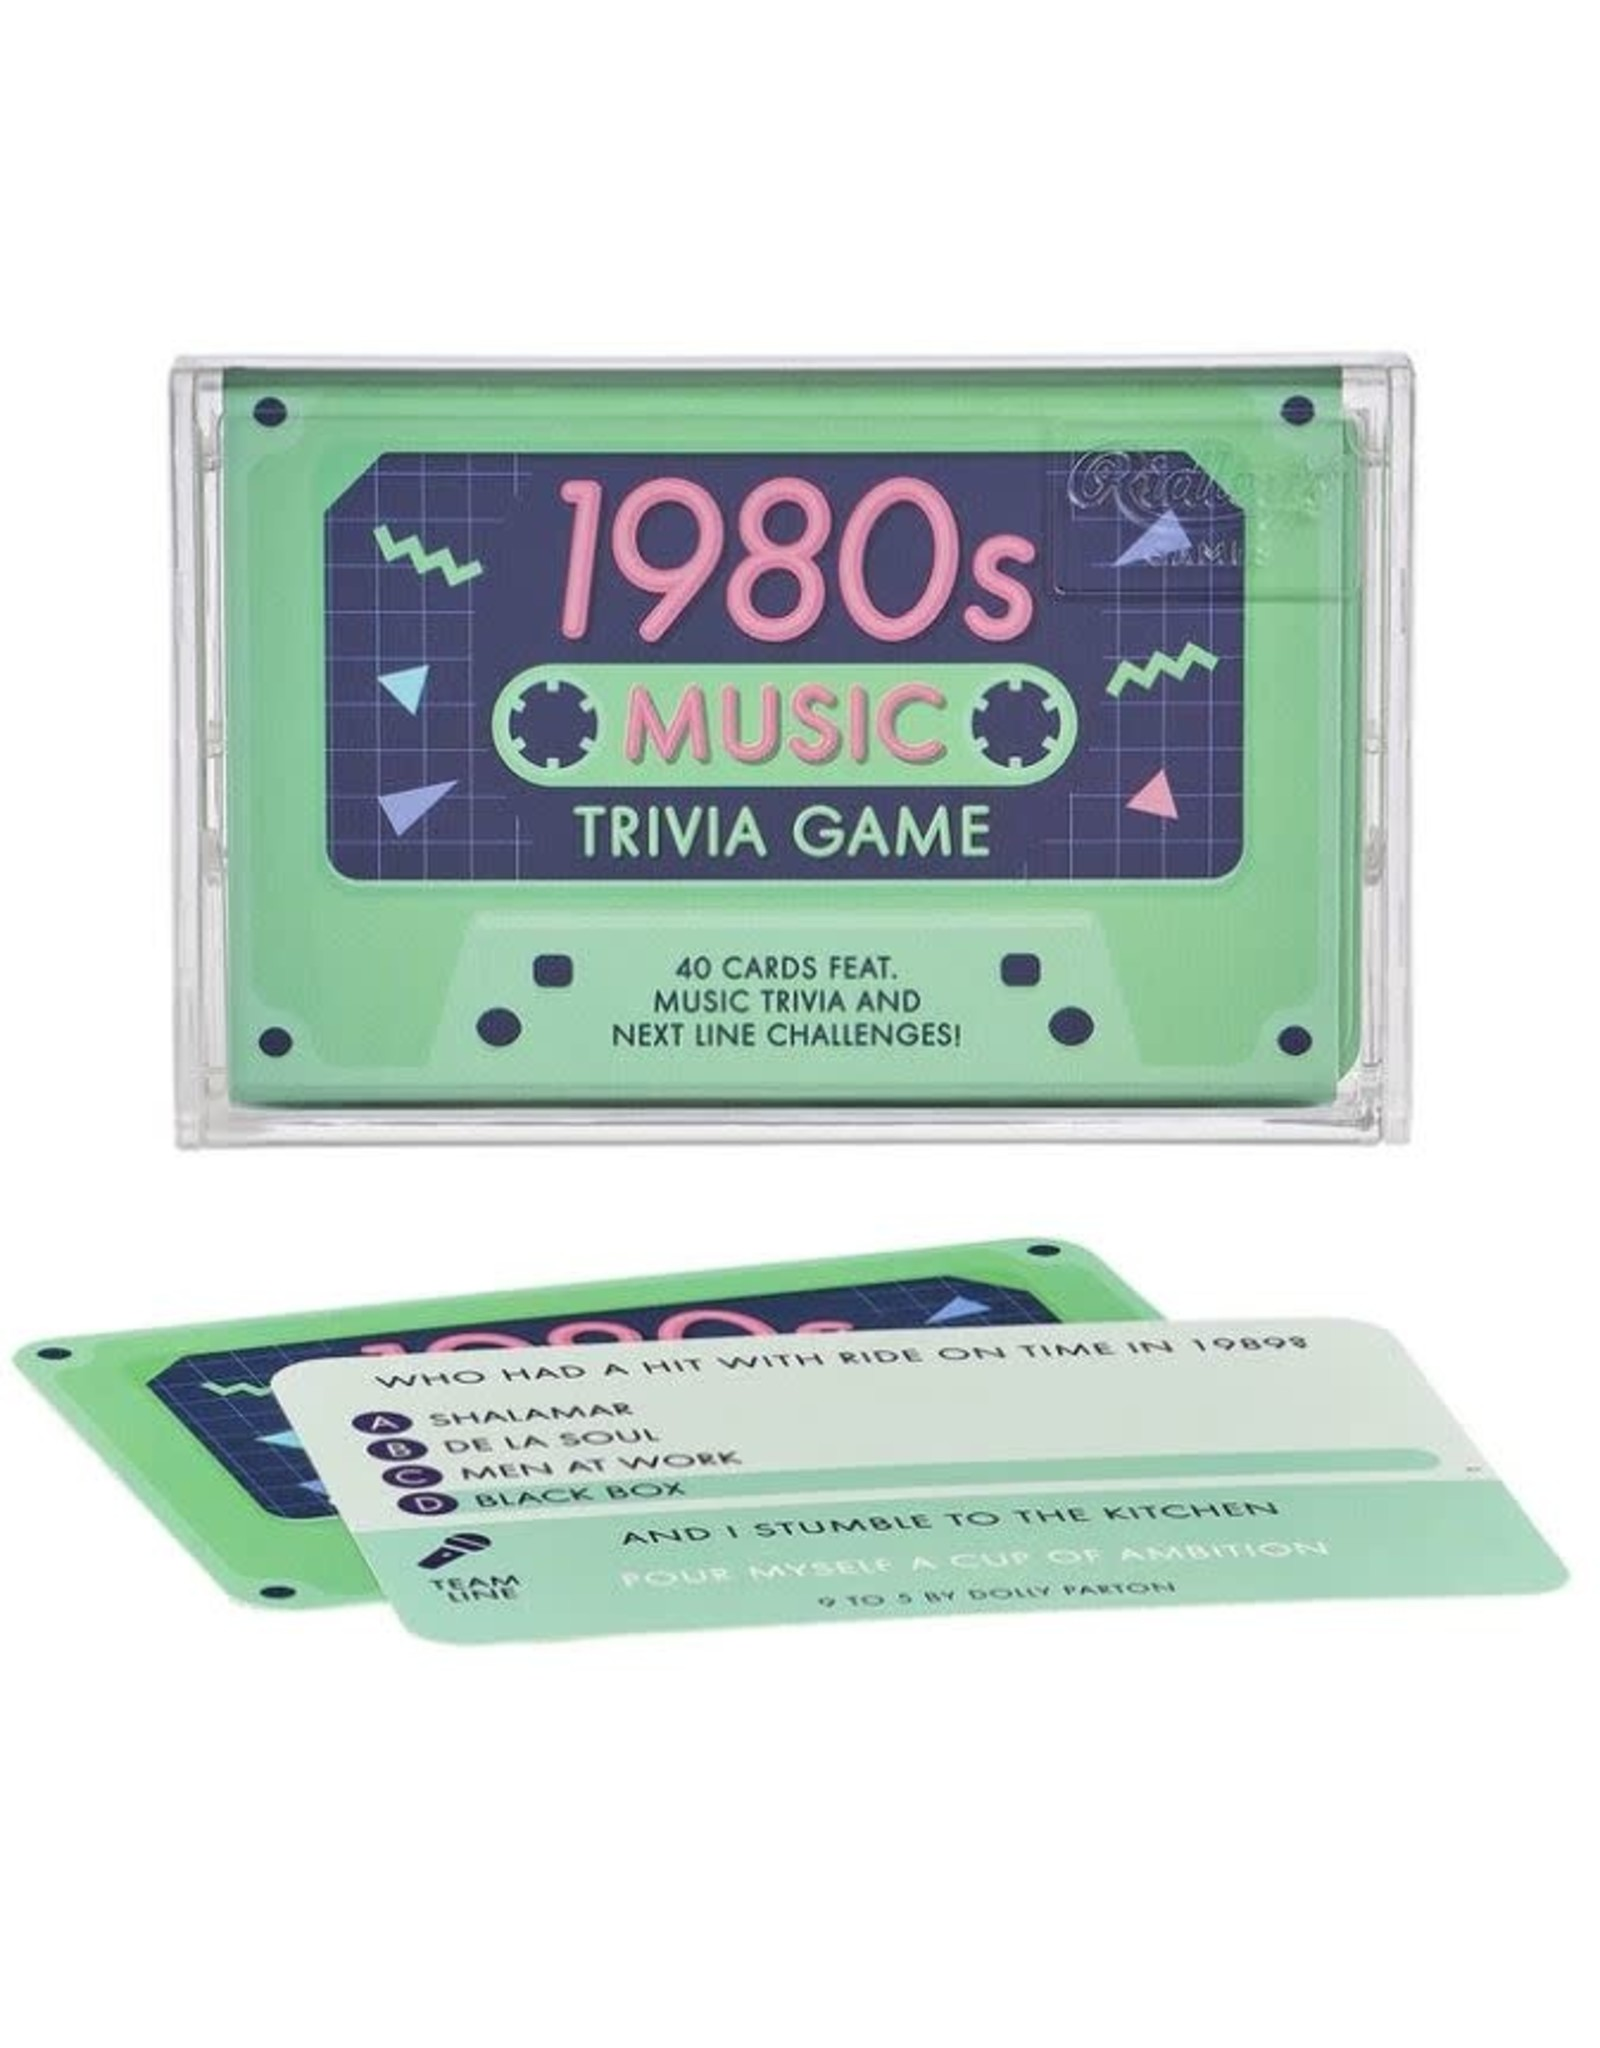 Ridley's 1980s Music Trivia Game